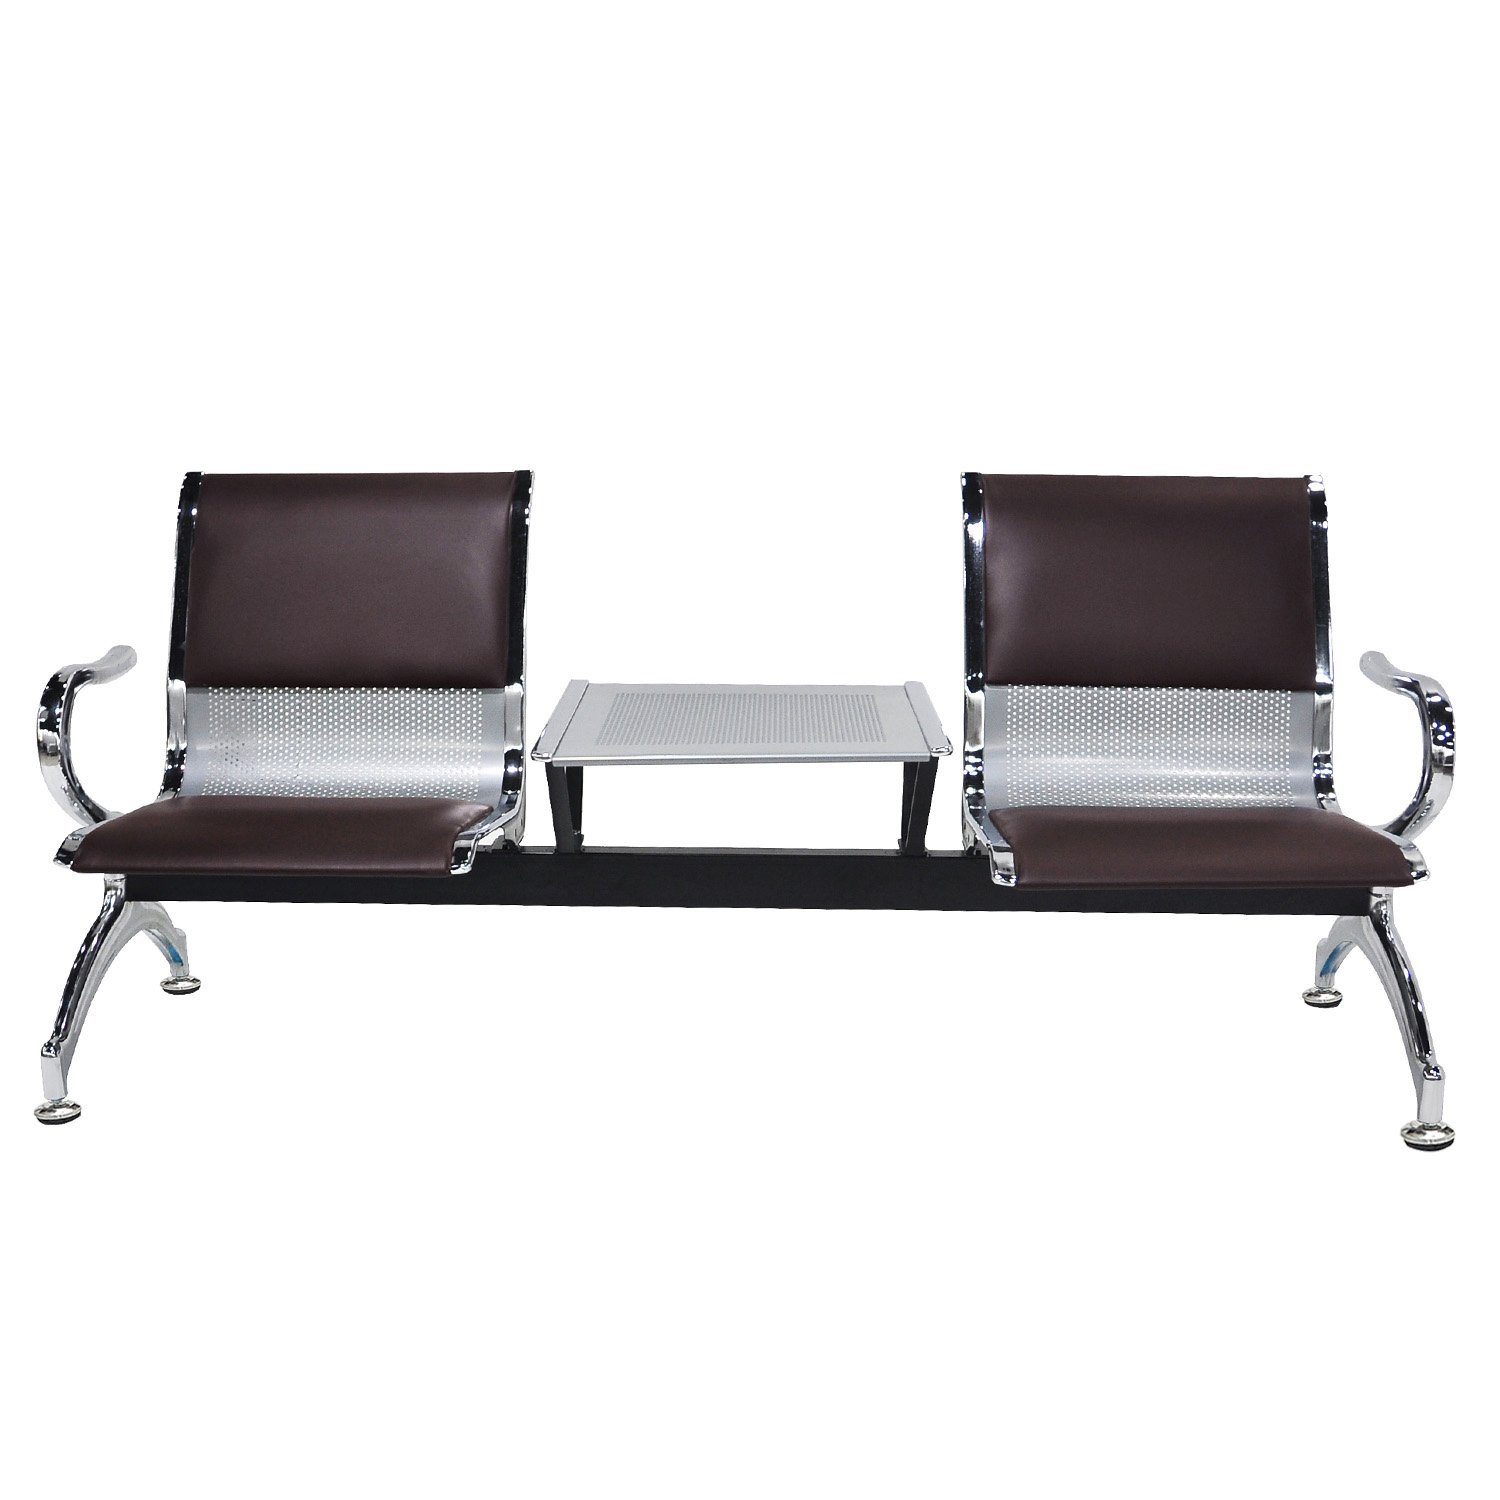 BORELAX New PU Leather Airport Reception Waiting Chair Office Hall Bank Hospital Bench Furniture 2-Seat w/ Table